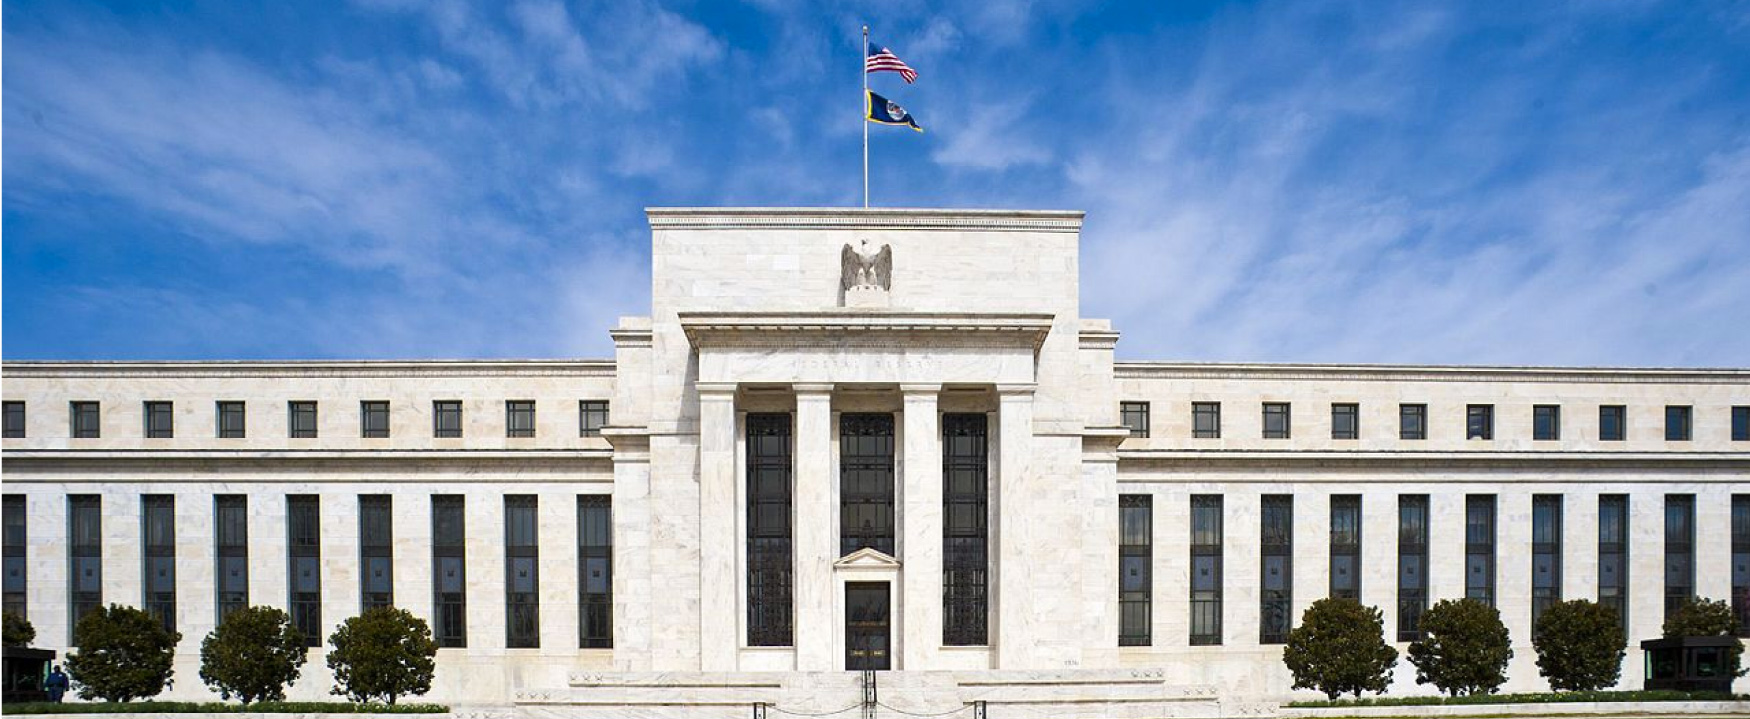 The Marriner S. Eccles Federal Reserve Board Building is shown.  The very large building, located in Washington DC, is constructed of white marble and has a grand entranceway.